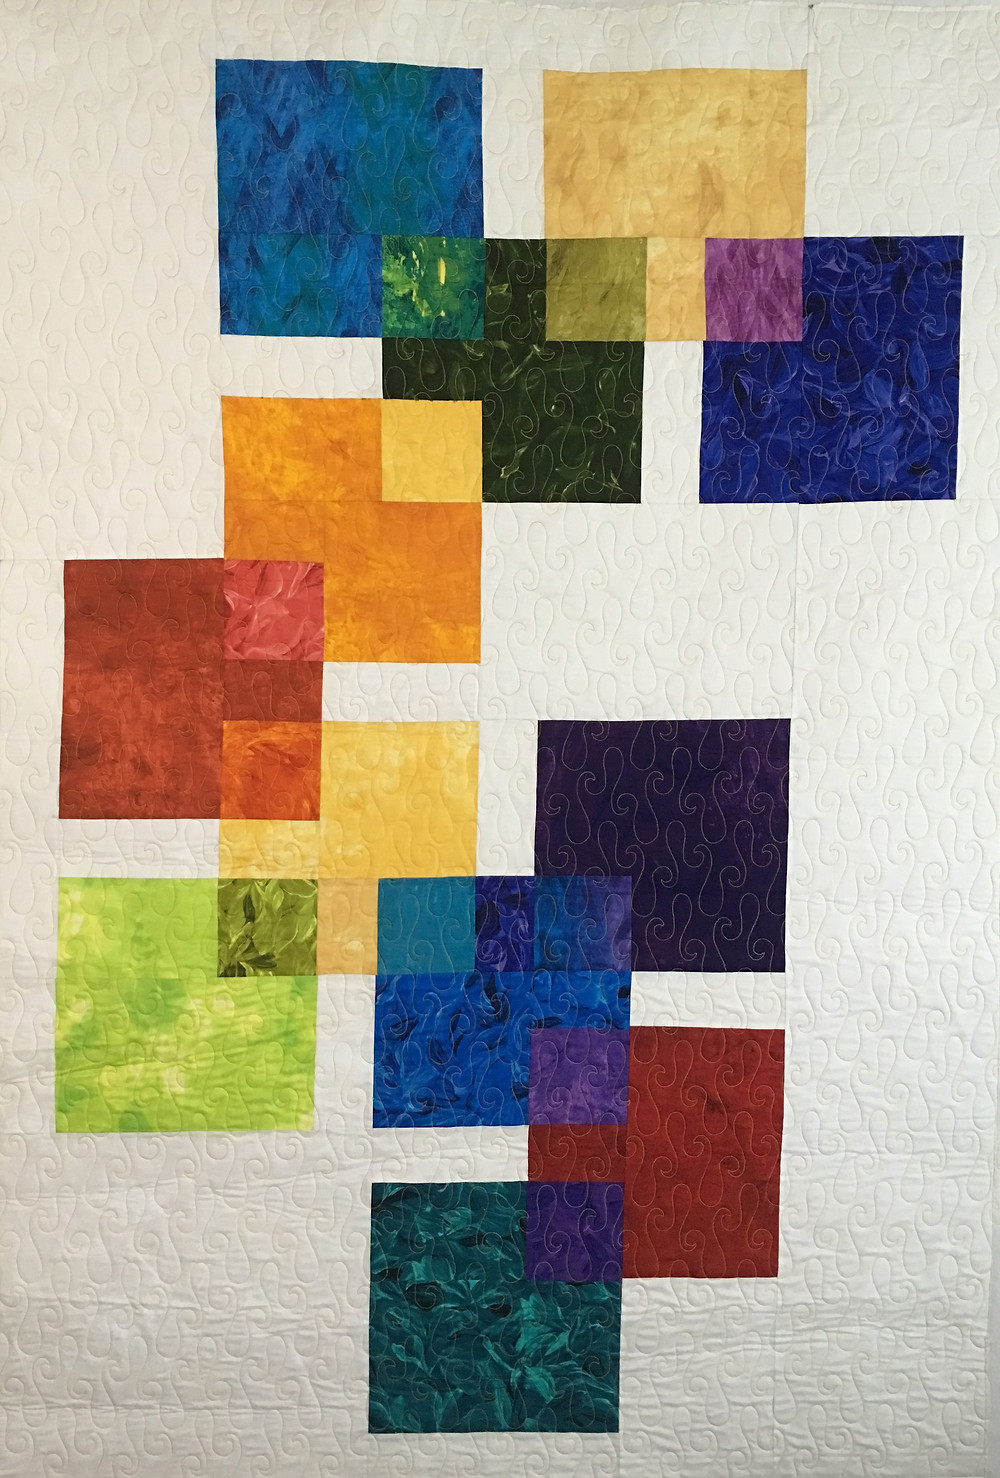 Beth Swatch in Blenders Quilt